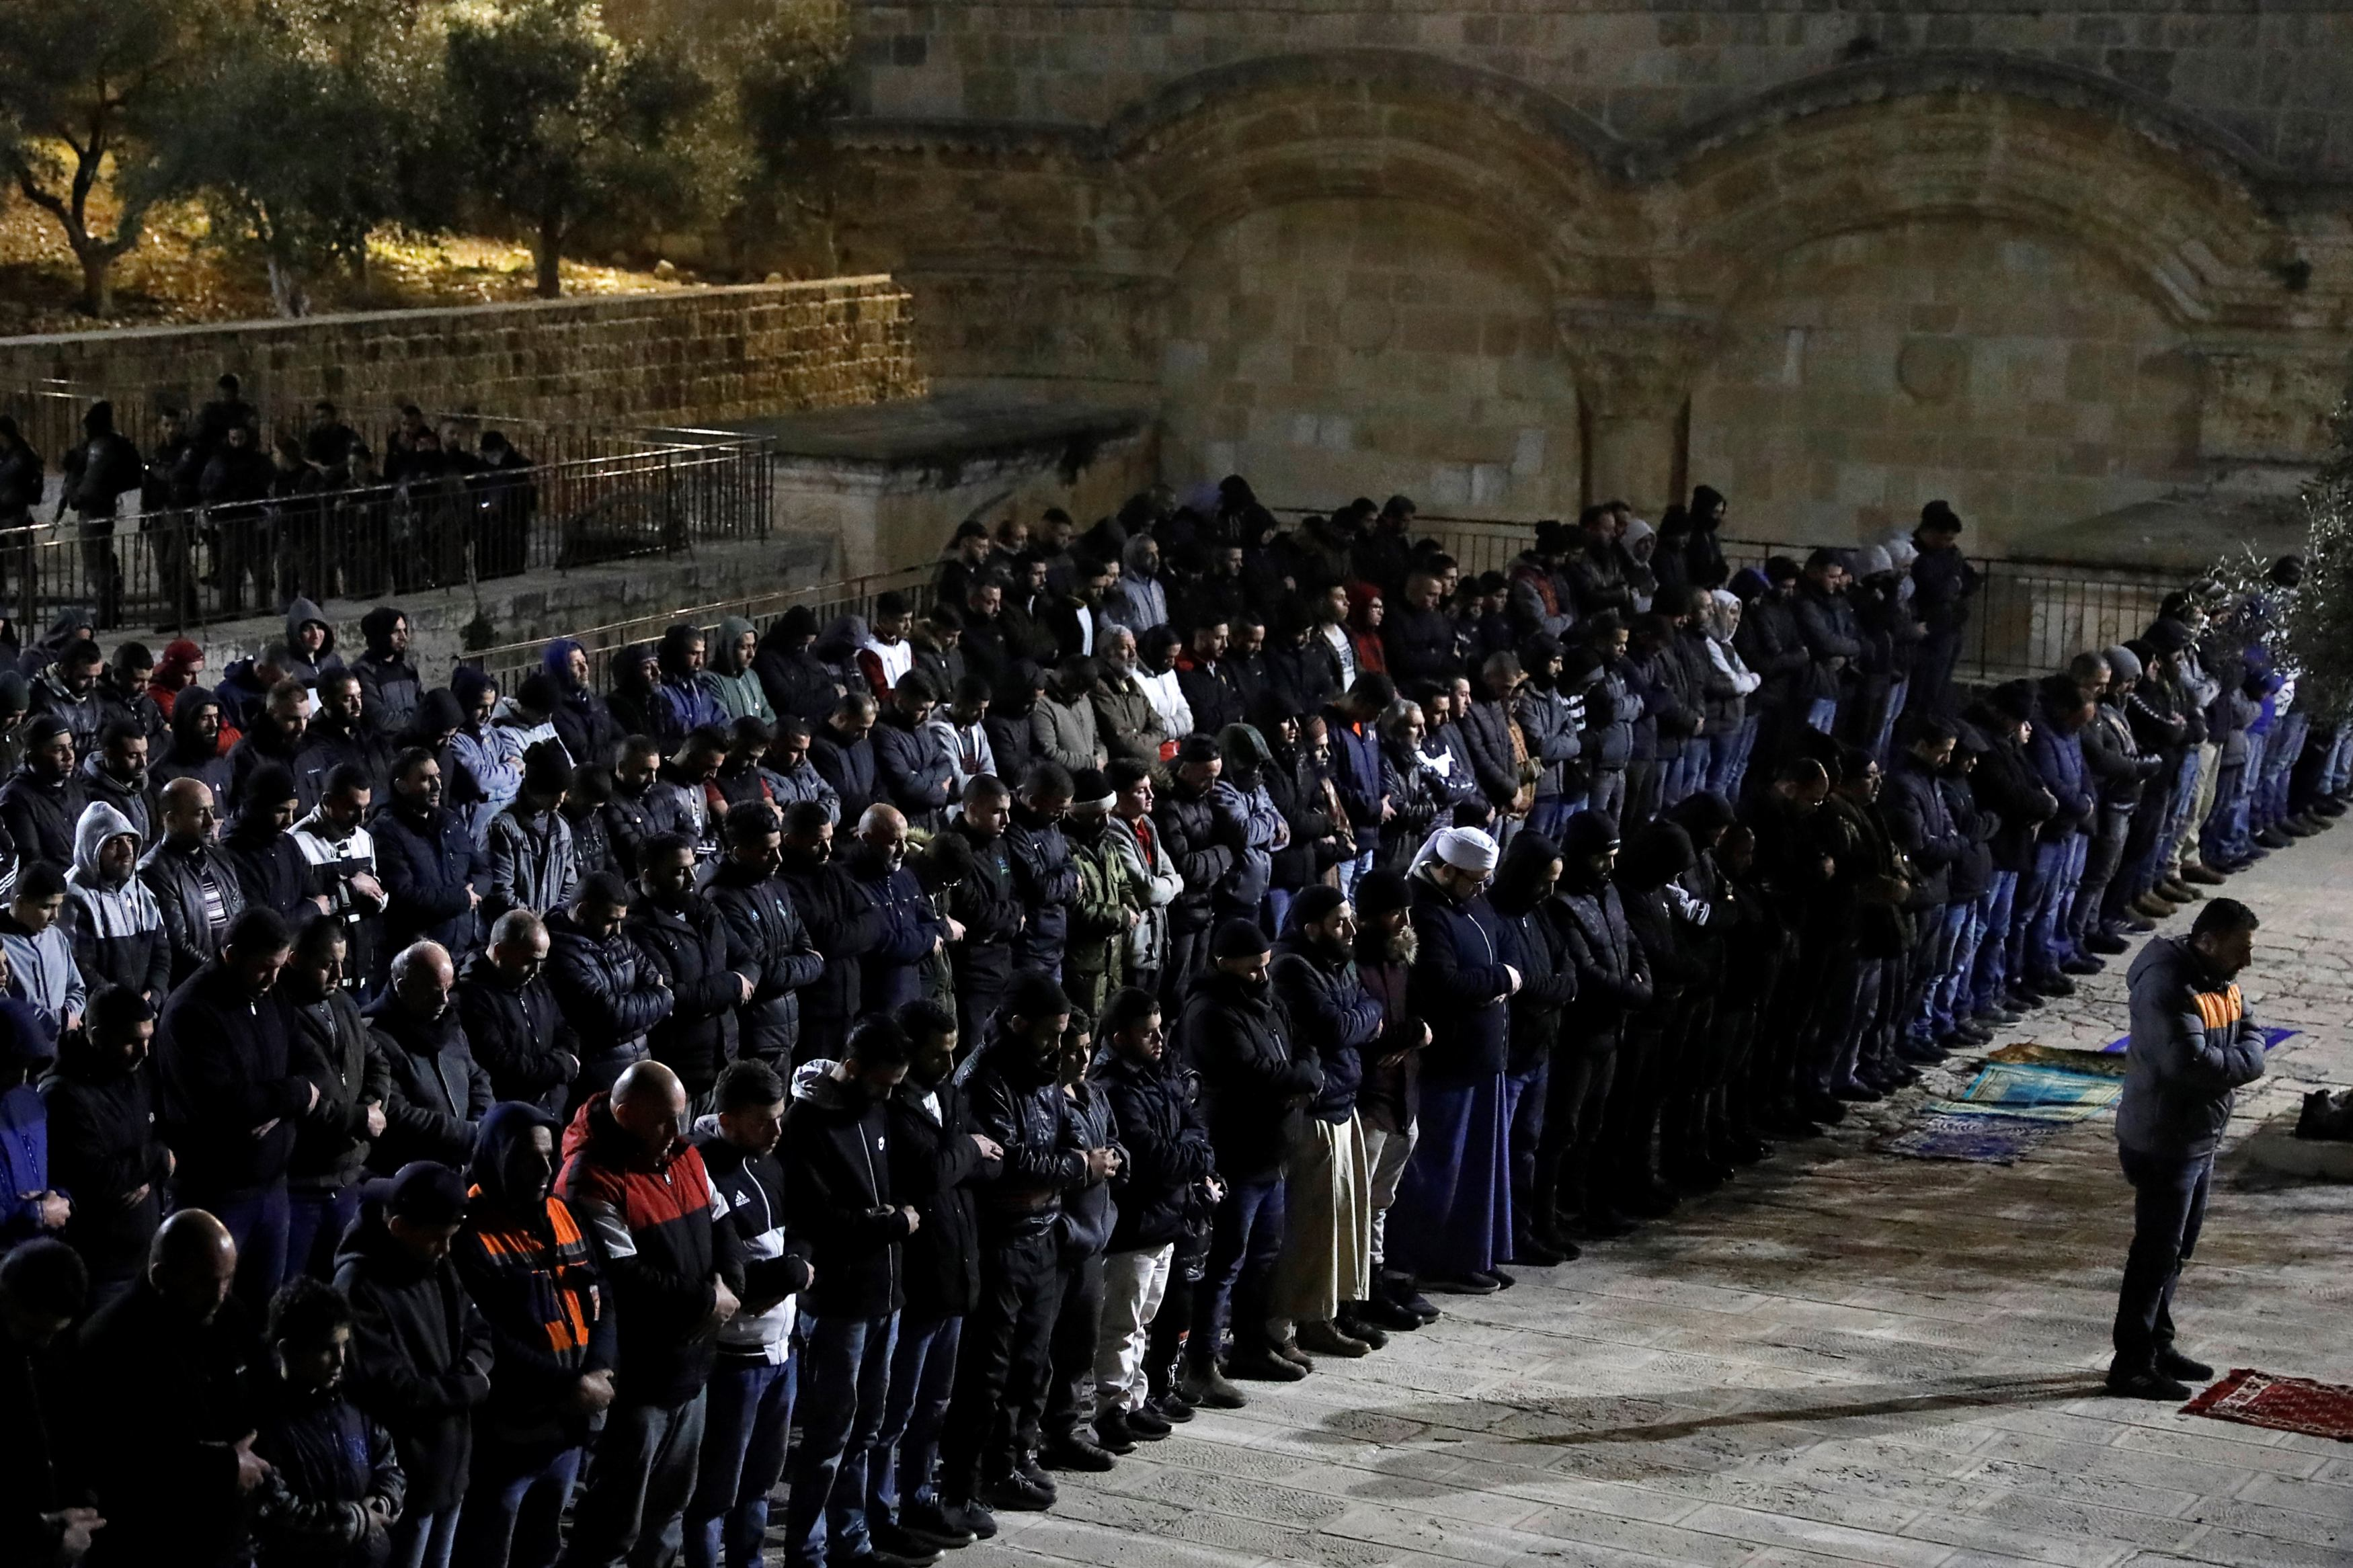 Palestinians pray near al-Rahmeh Gate in the Al-Aqsa mosque compound in Jerusalem on 20 February 2019 (AFP)